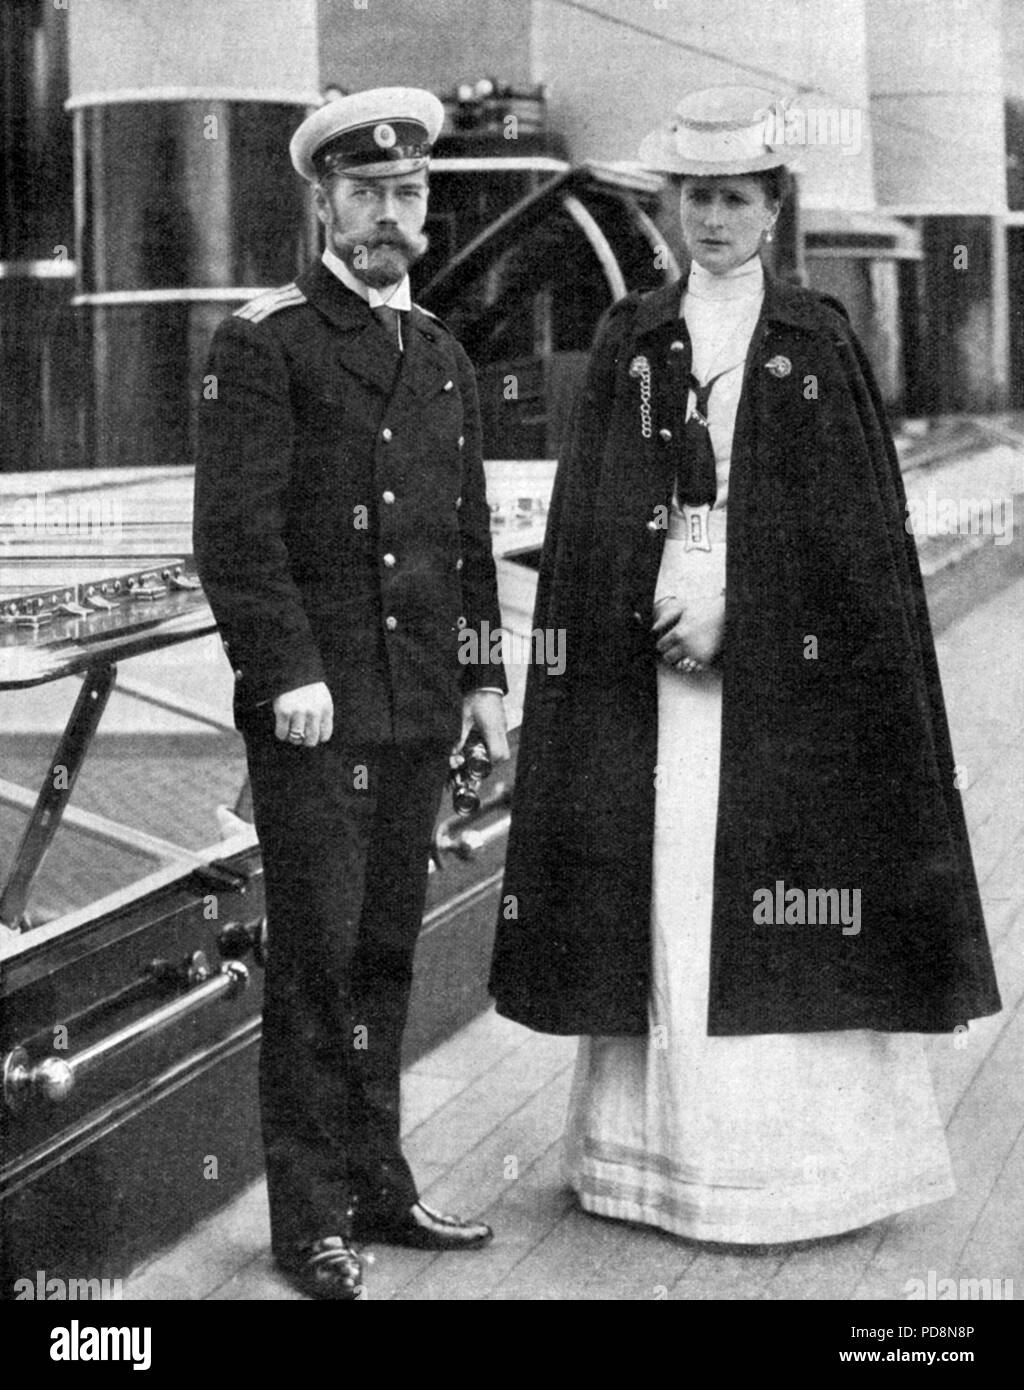 Tsar Nicholas II of Russia. 1868-1918. The last emperor of Russia. Pictured here with his wife Empress Alexandra, 1872-1918. - Stock Image